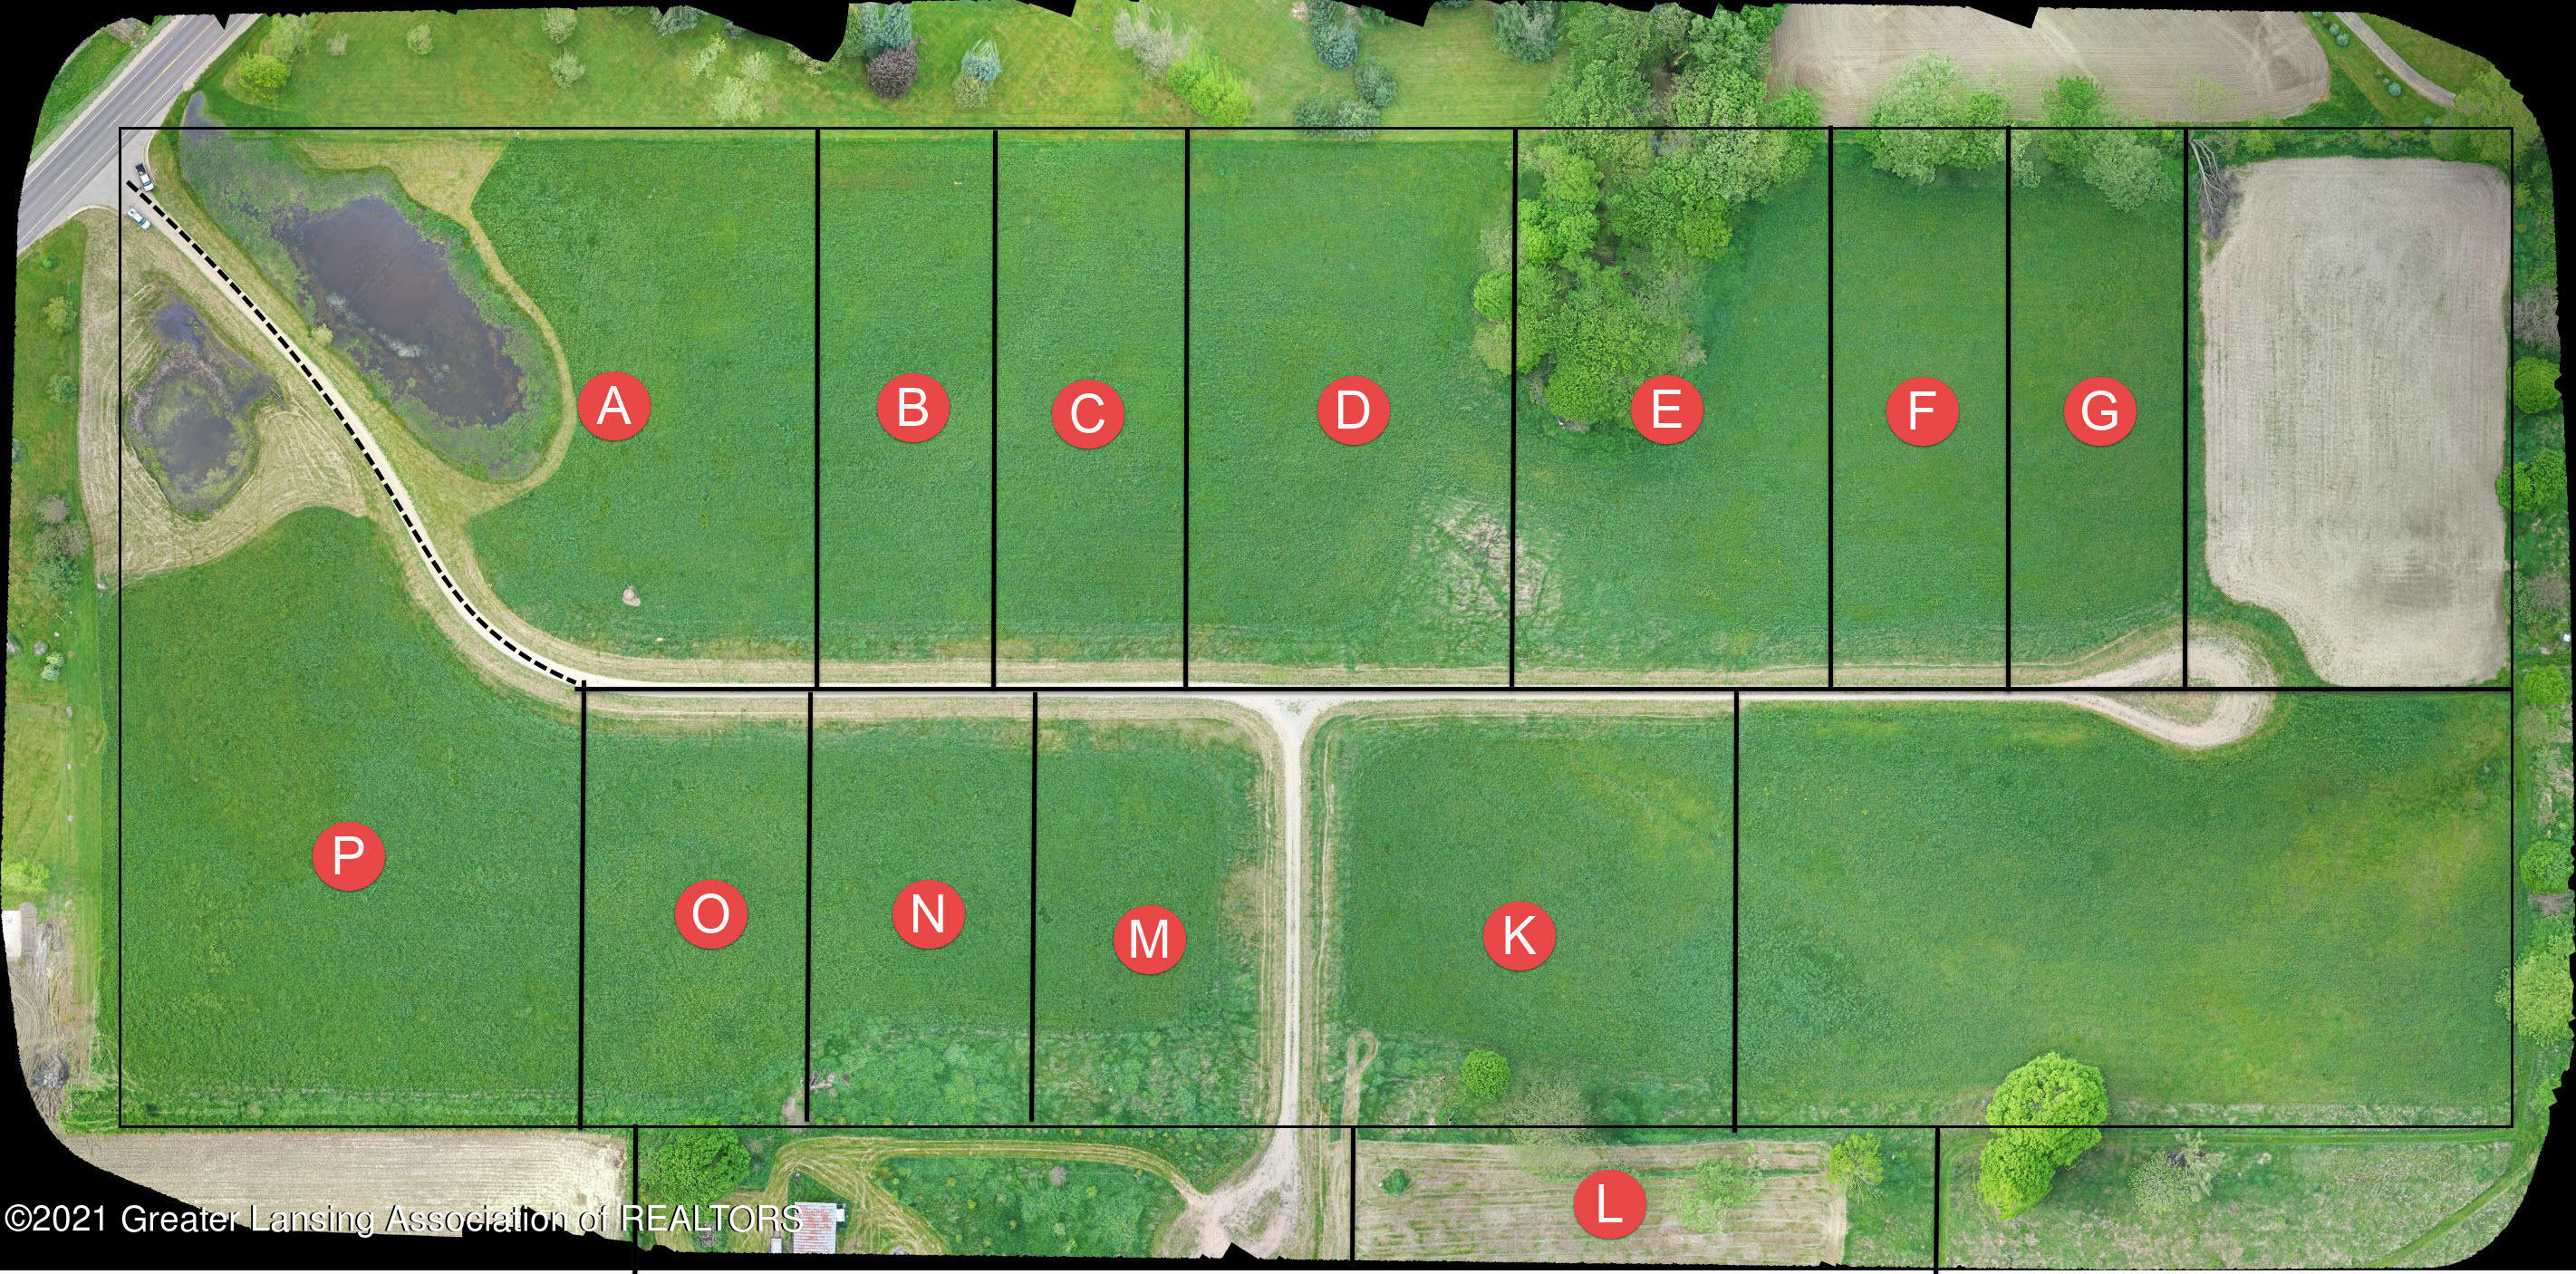 0 Pinebluff Dr., Parcel K - 1 Overview - Pinebluff Estates - 1